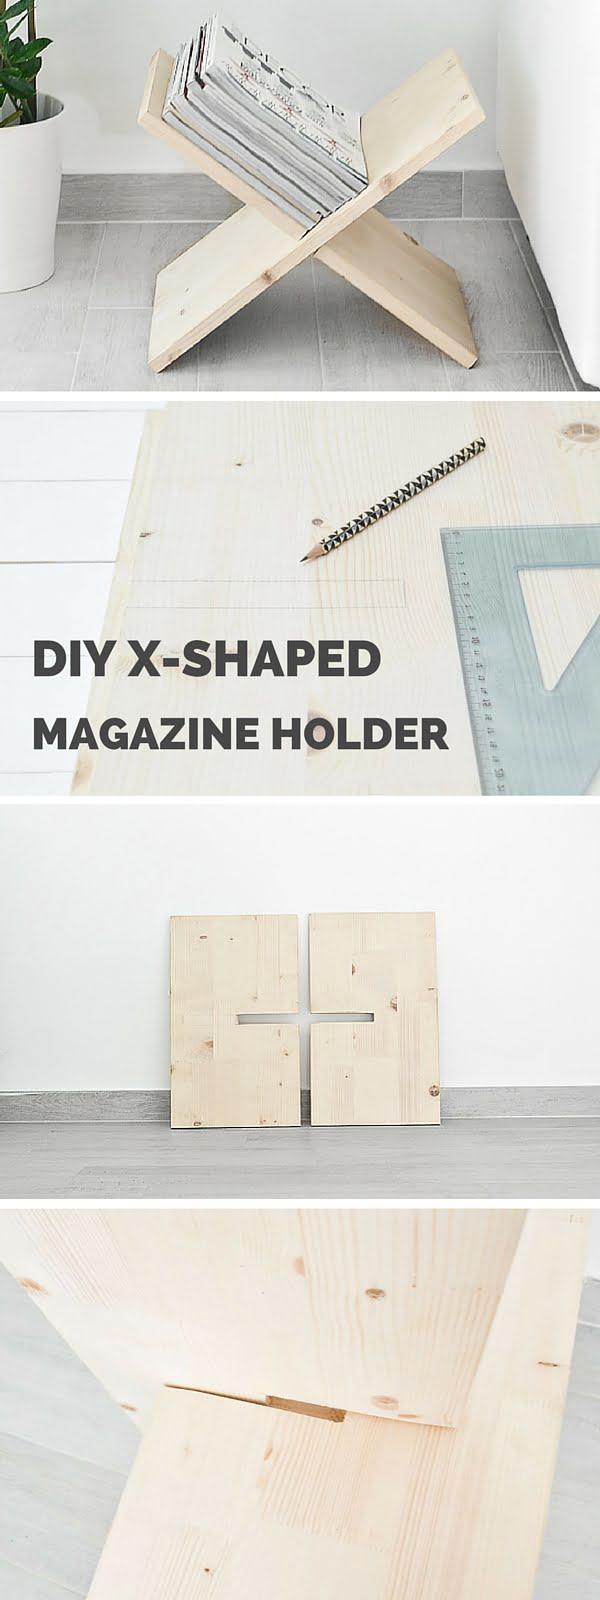 How to make a #DIY X-Shaped Magazine Holder. Looks great! #homedecorideas